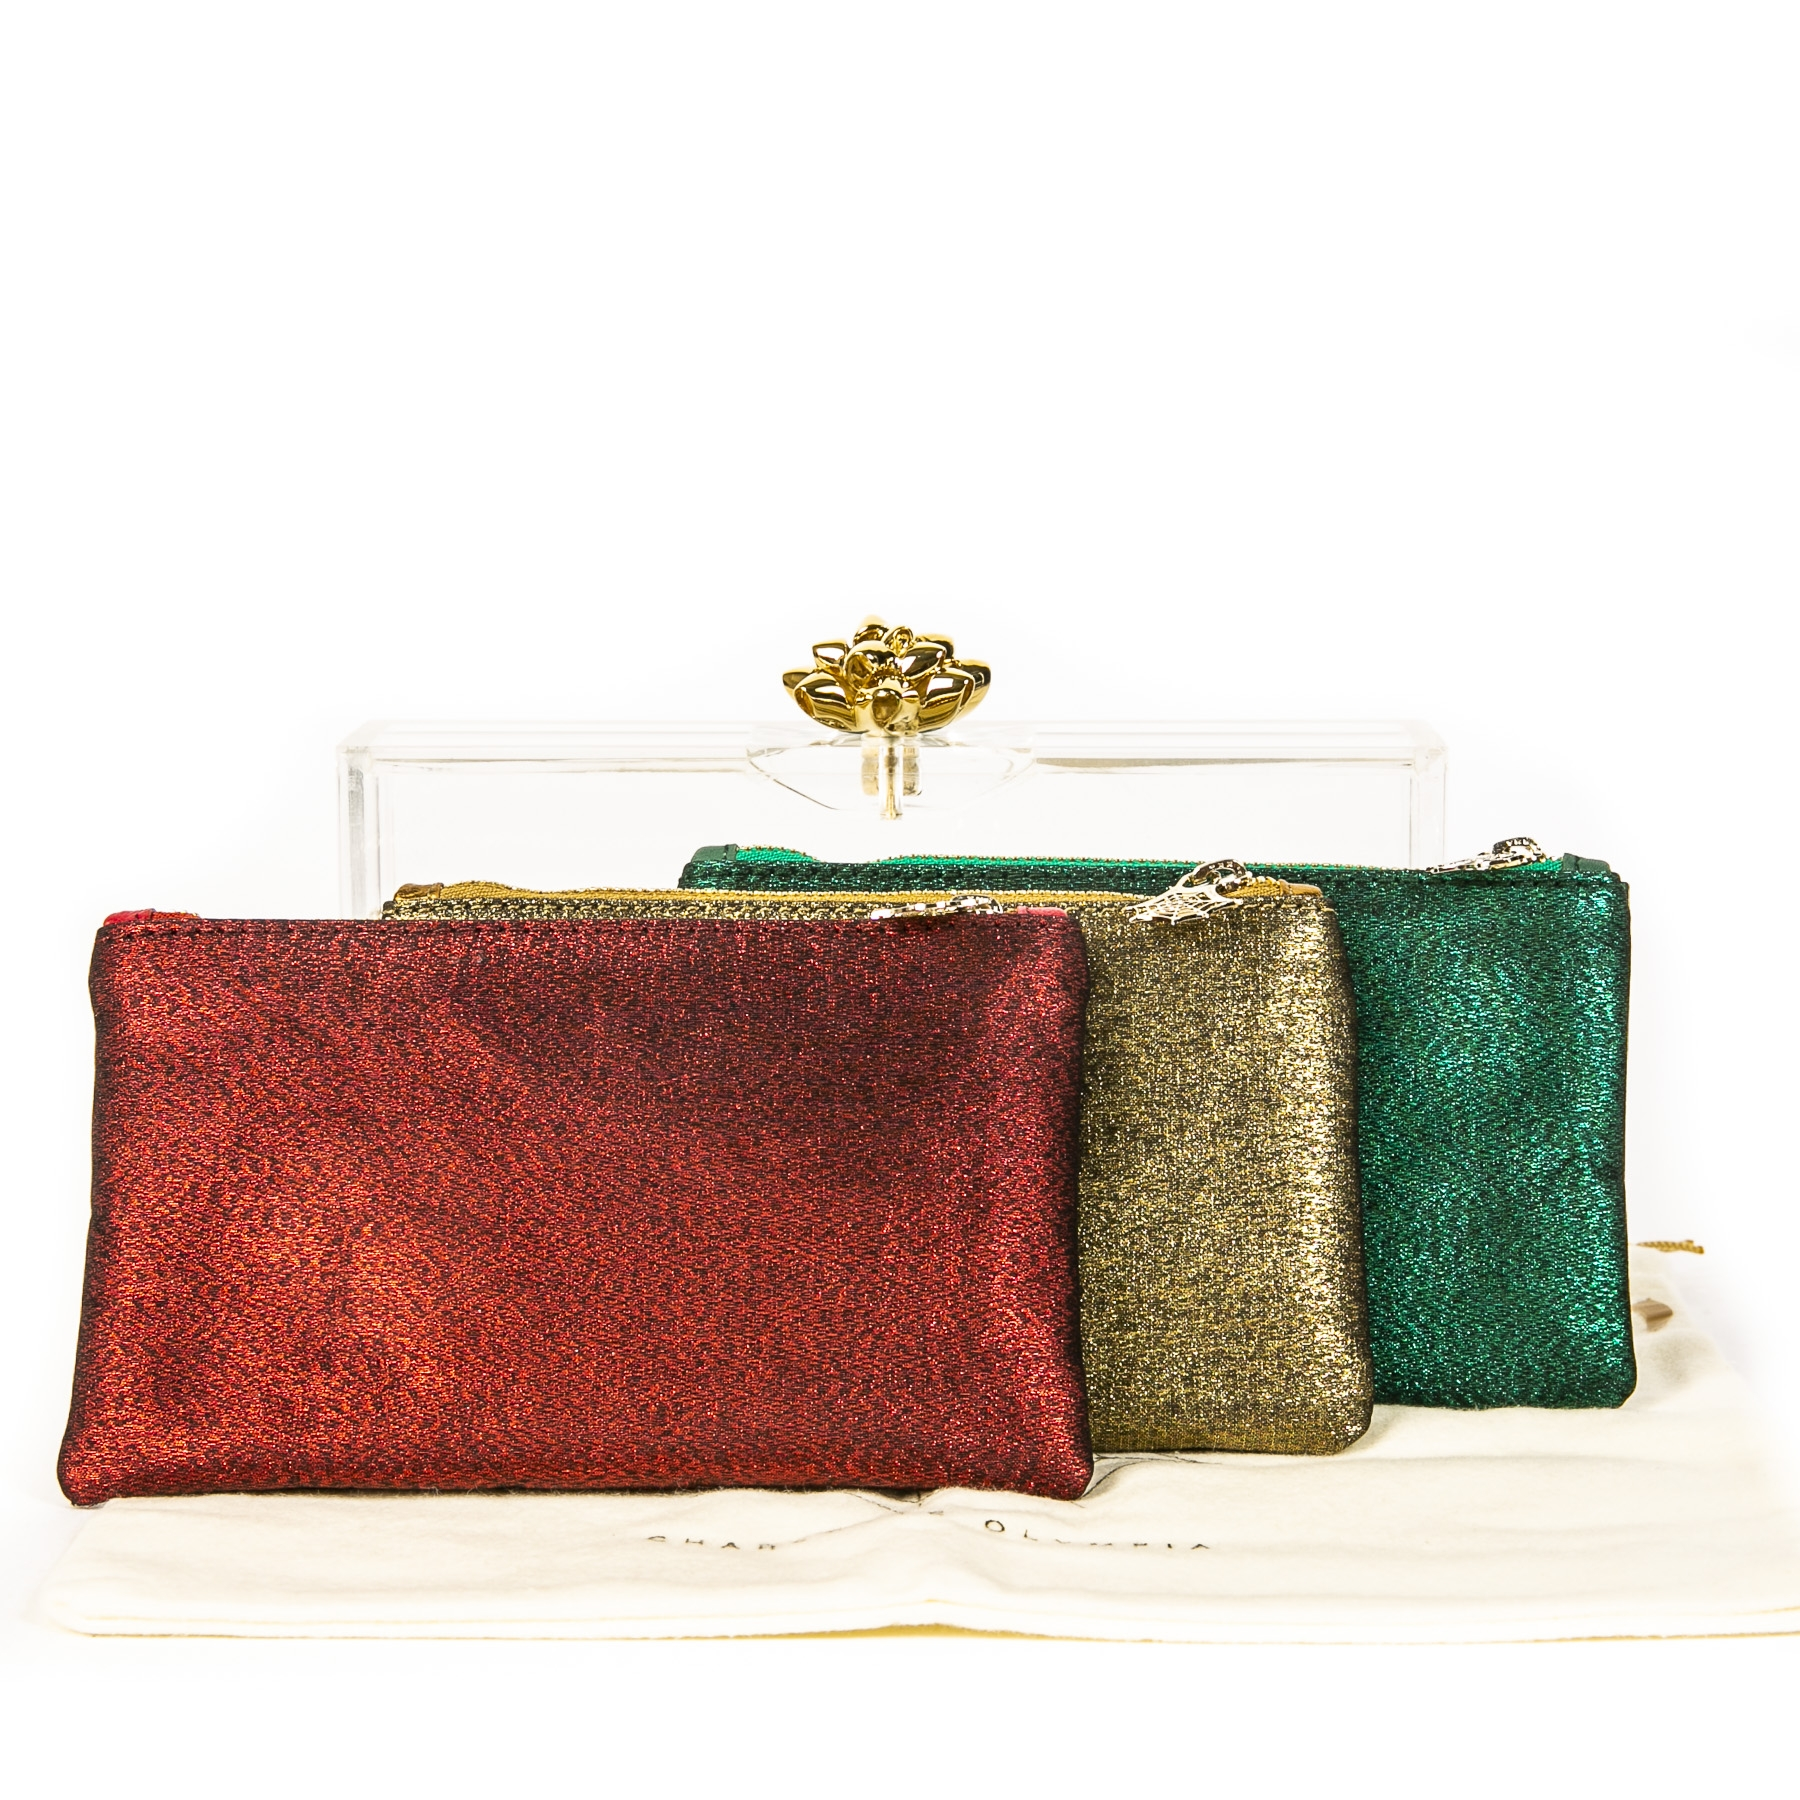 Authentieke Tweedehands Charlotte Olympia Pandora Box Clutch in Red Green Gold Shimmer juiste prijs veilig online shoppen luxe merken webshop winkelen Antwerpen België mode fashion